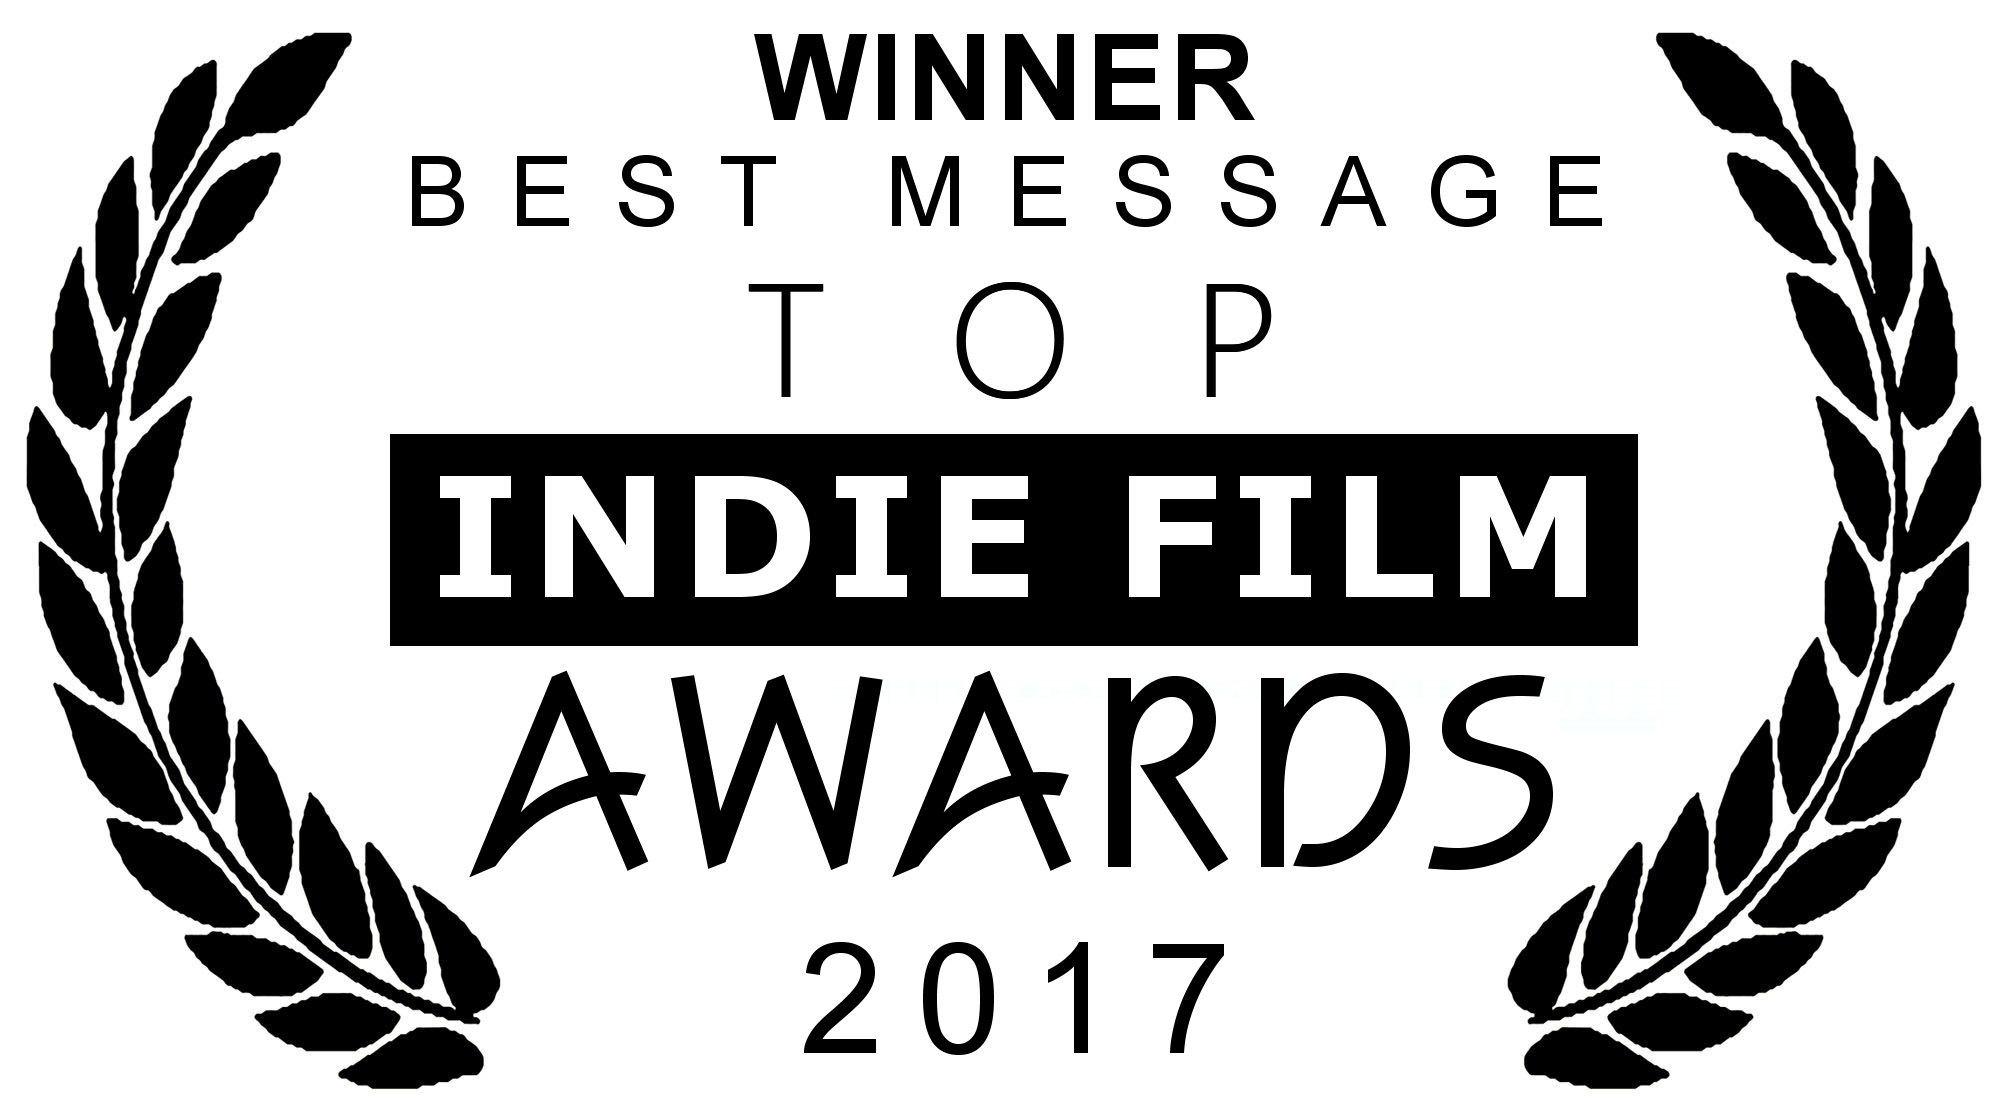 WINNER BEST MESSAGE Top Indie Film Awards 2017